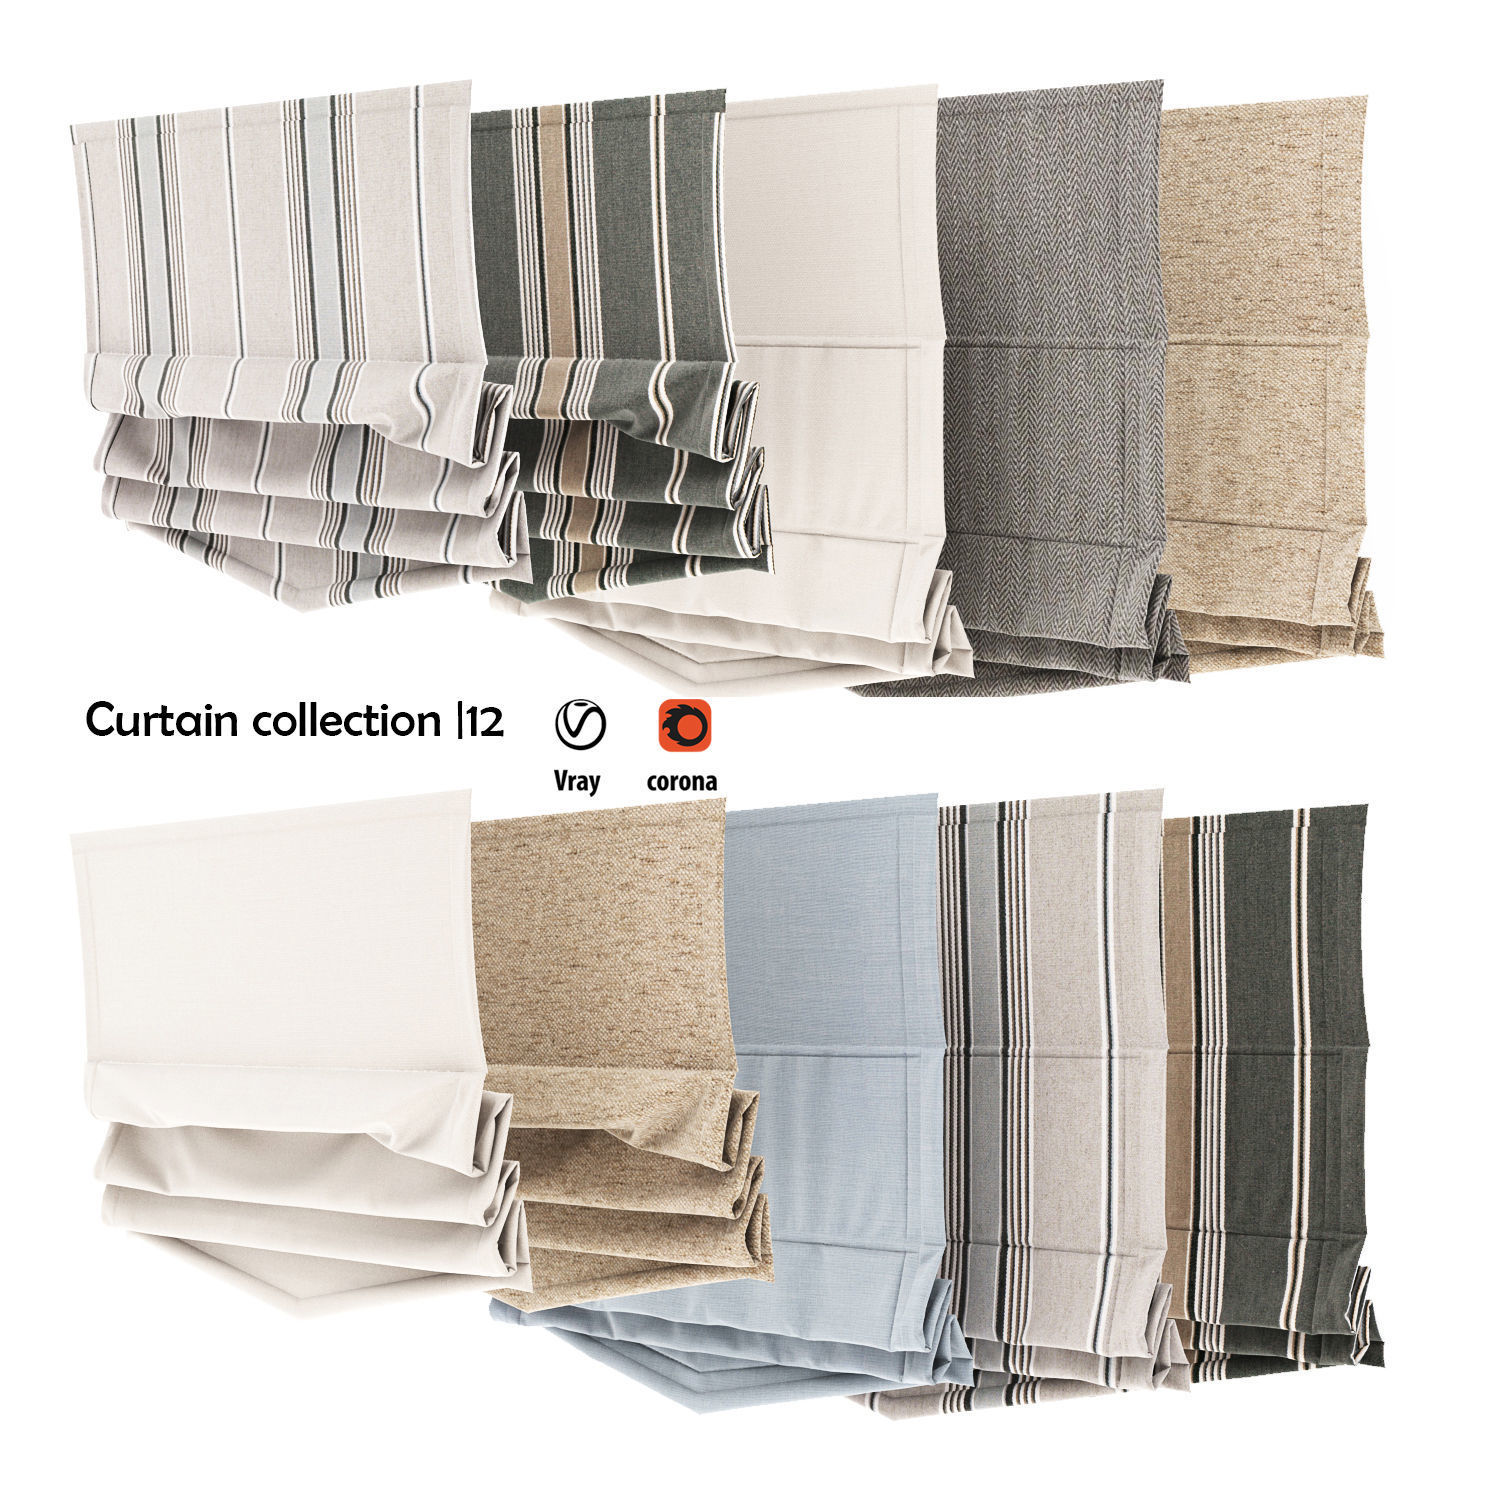 Curtain collection 12